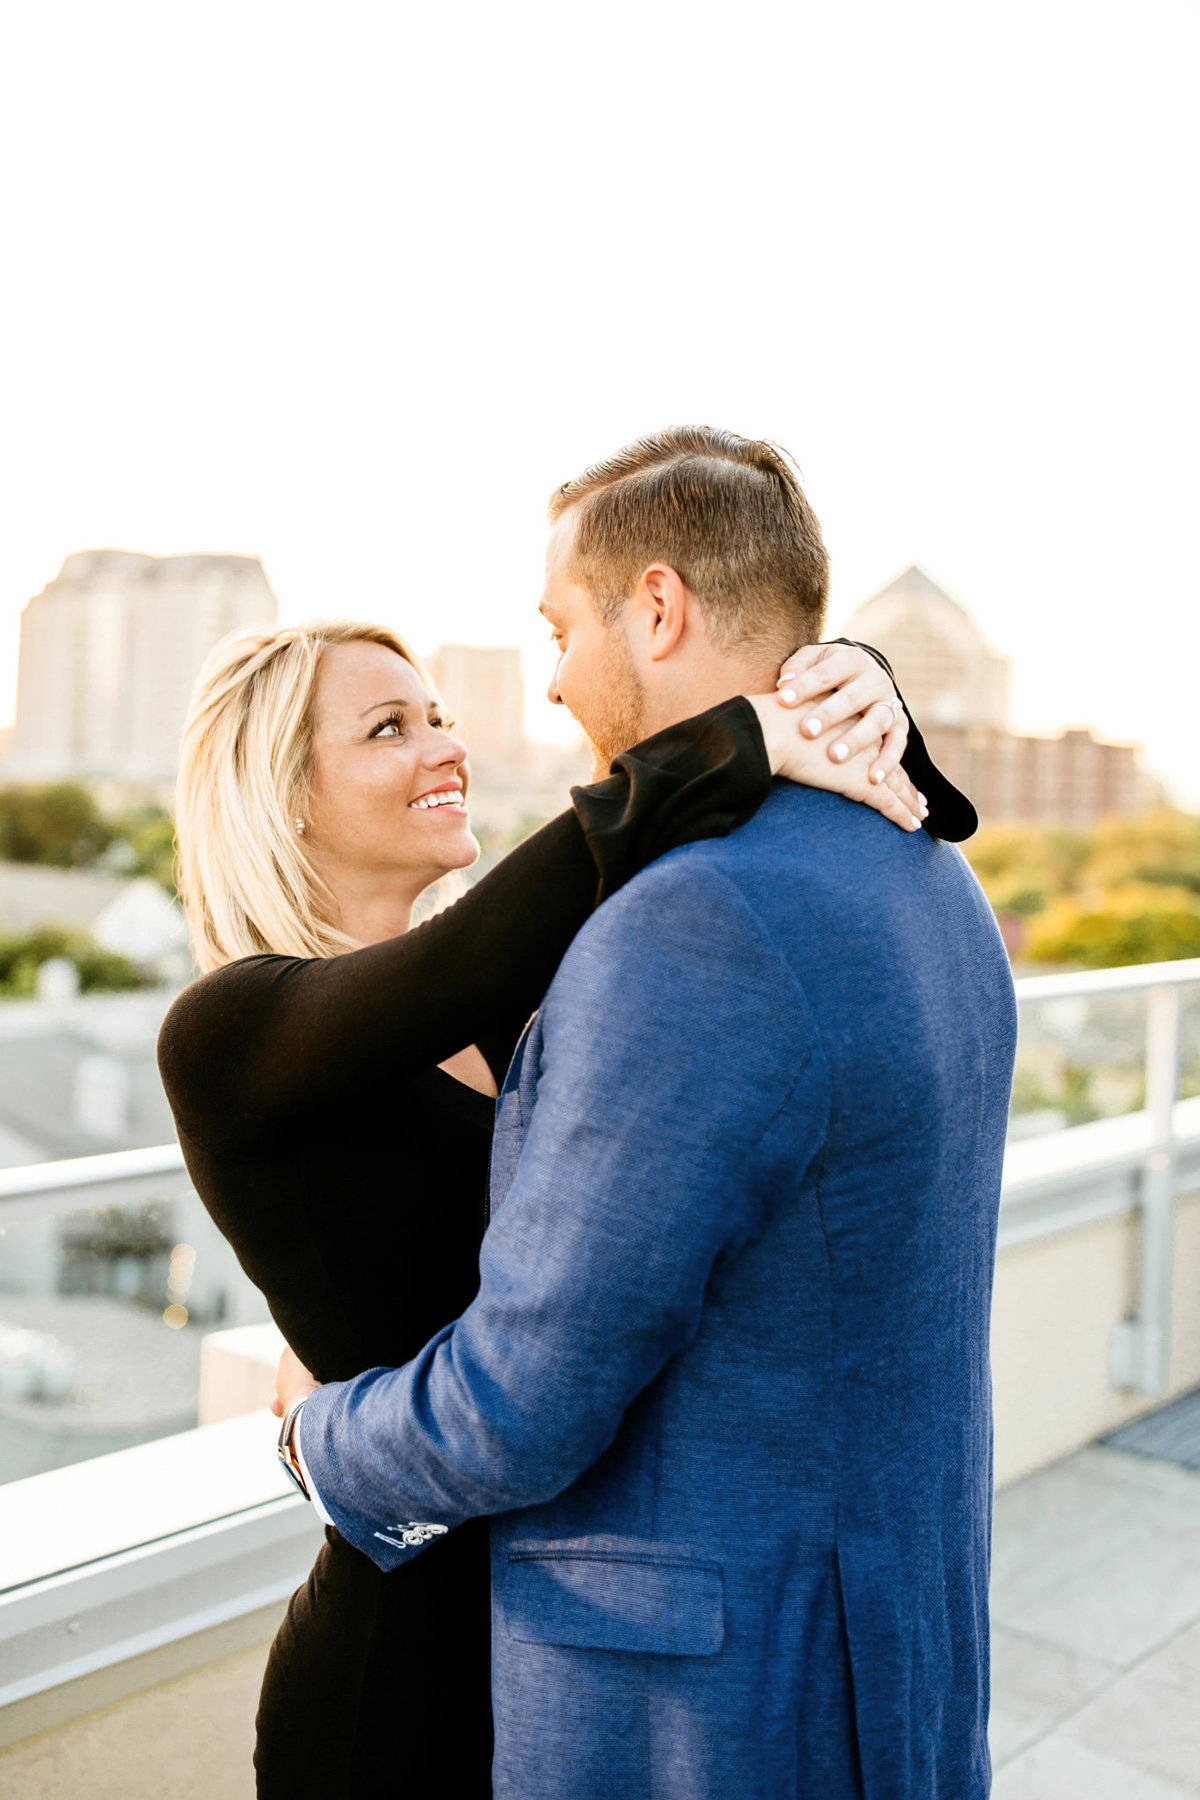 Eric & Megan - Downtown Dallas Rooftop Proposal & Engagement Session-107